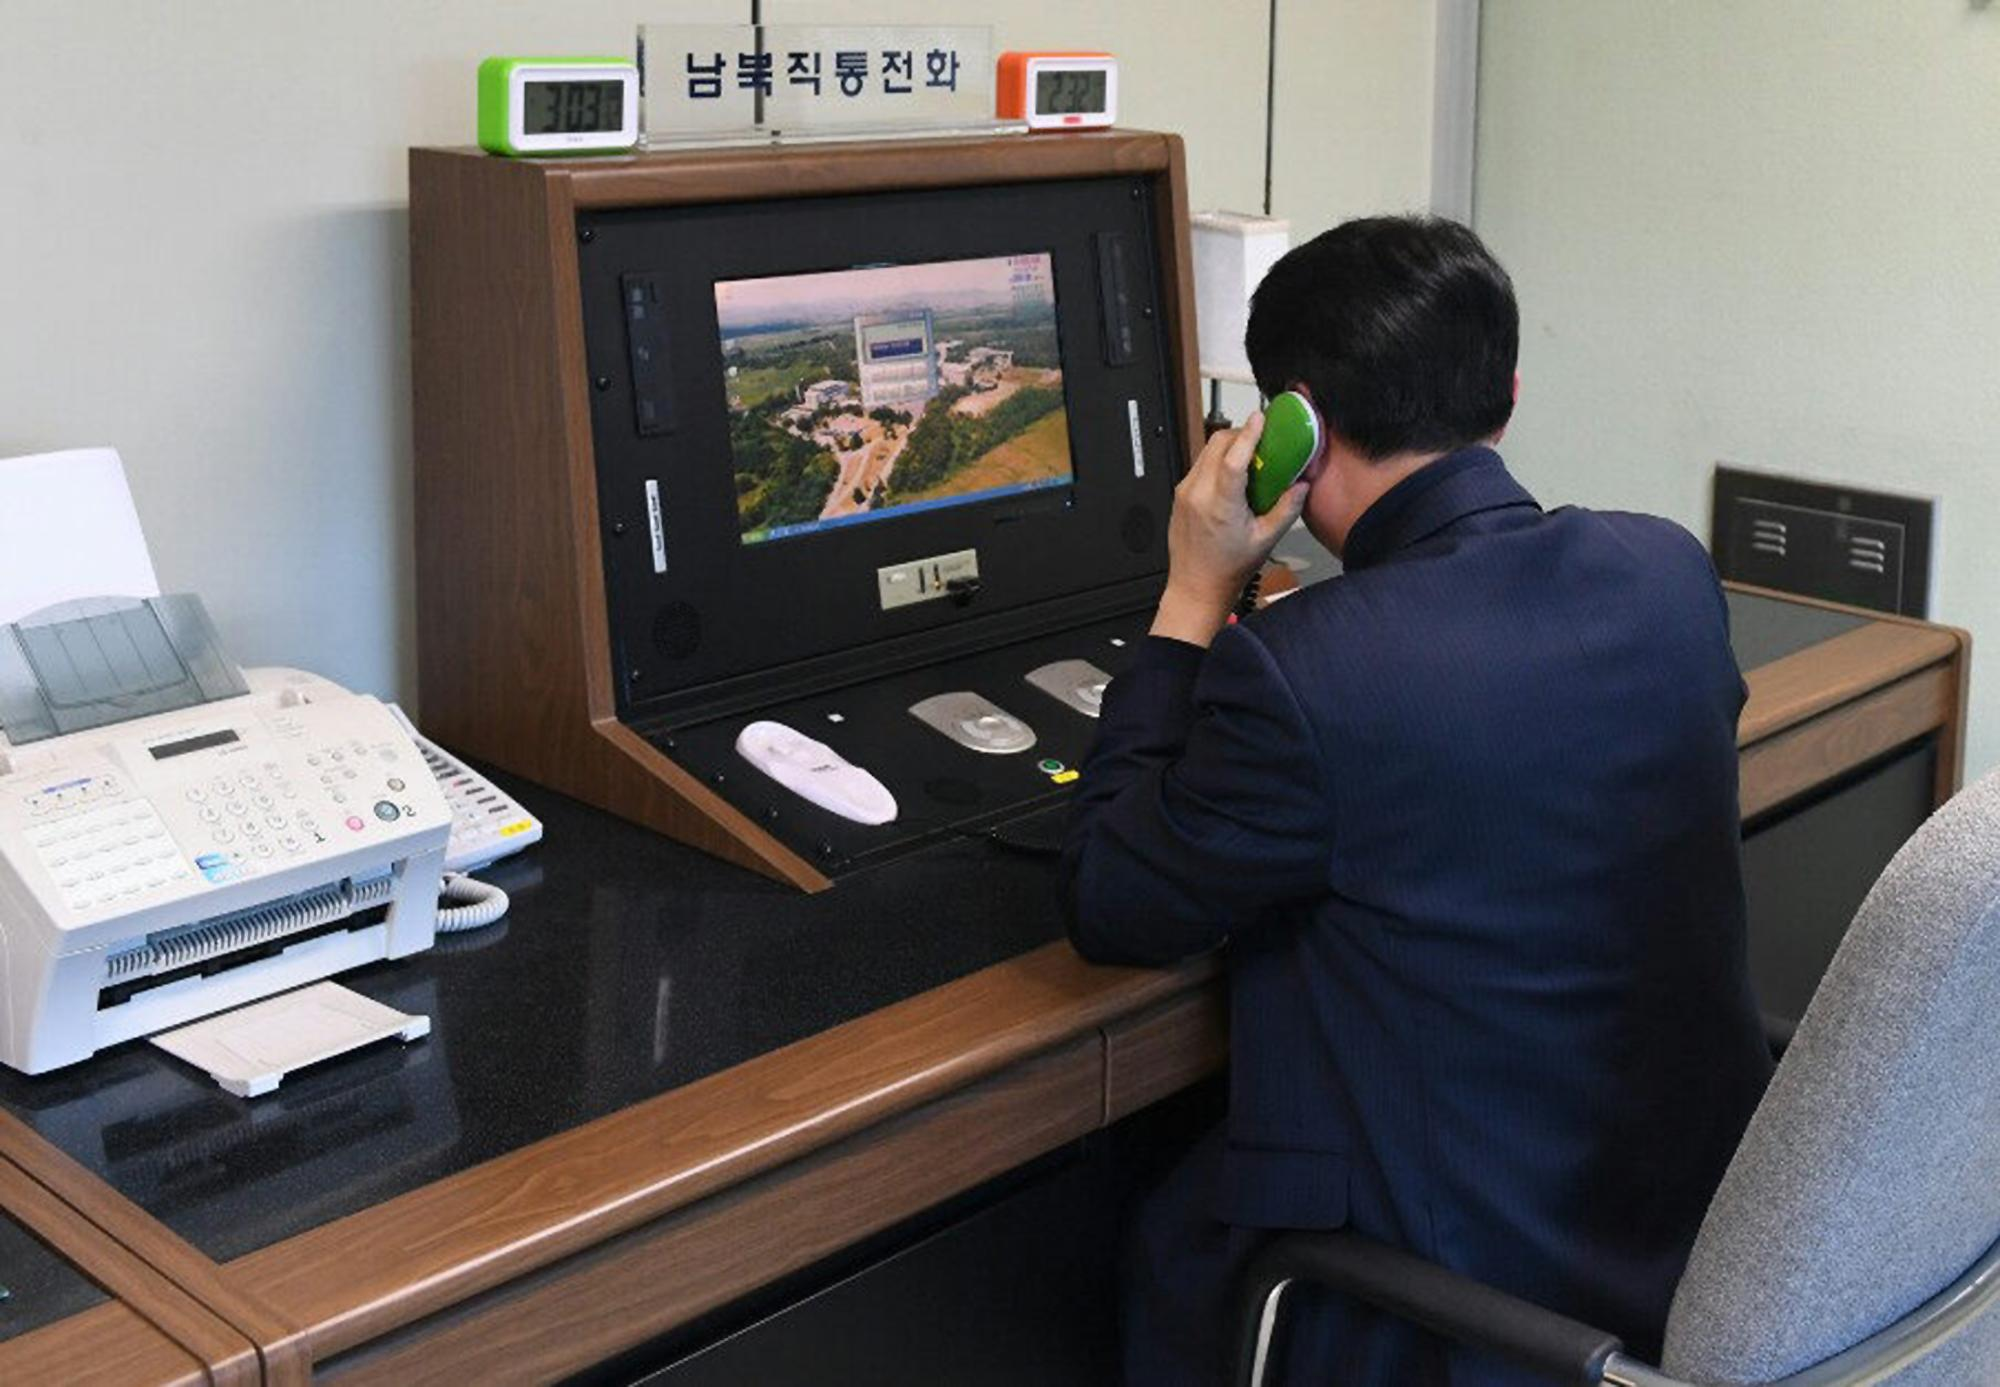 A South Korean government official checks the direct communications hotline to talk with the North Korean side at the border village of Panmunjom in Paju, South Korea, Wednesday, Jan. 3, 2018.{&amp;nbsp;} (Yonhap via AP)<p></p>